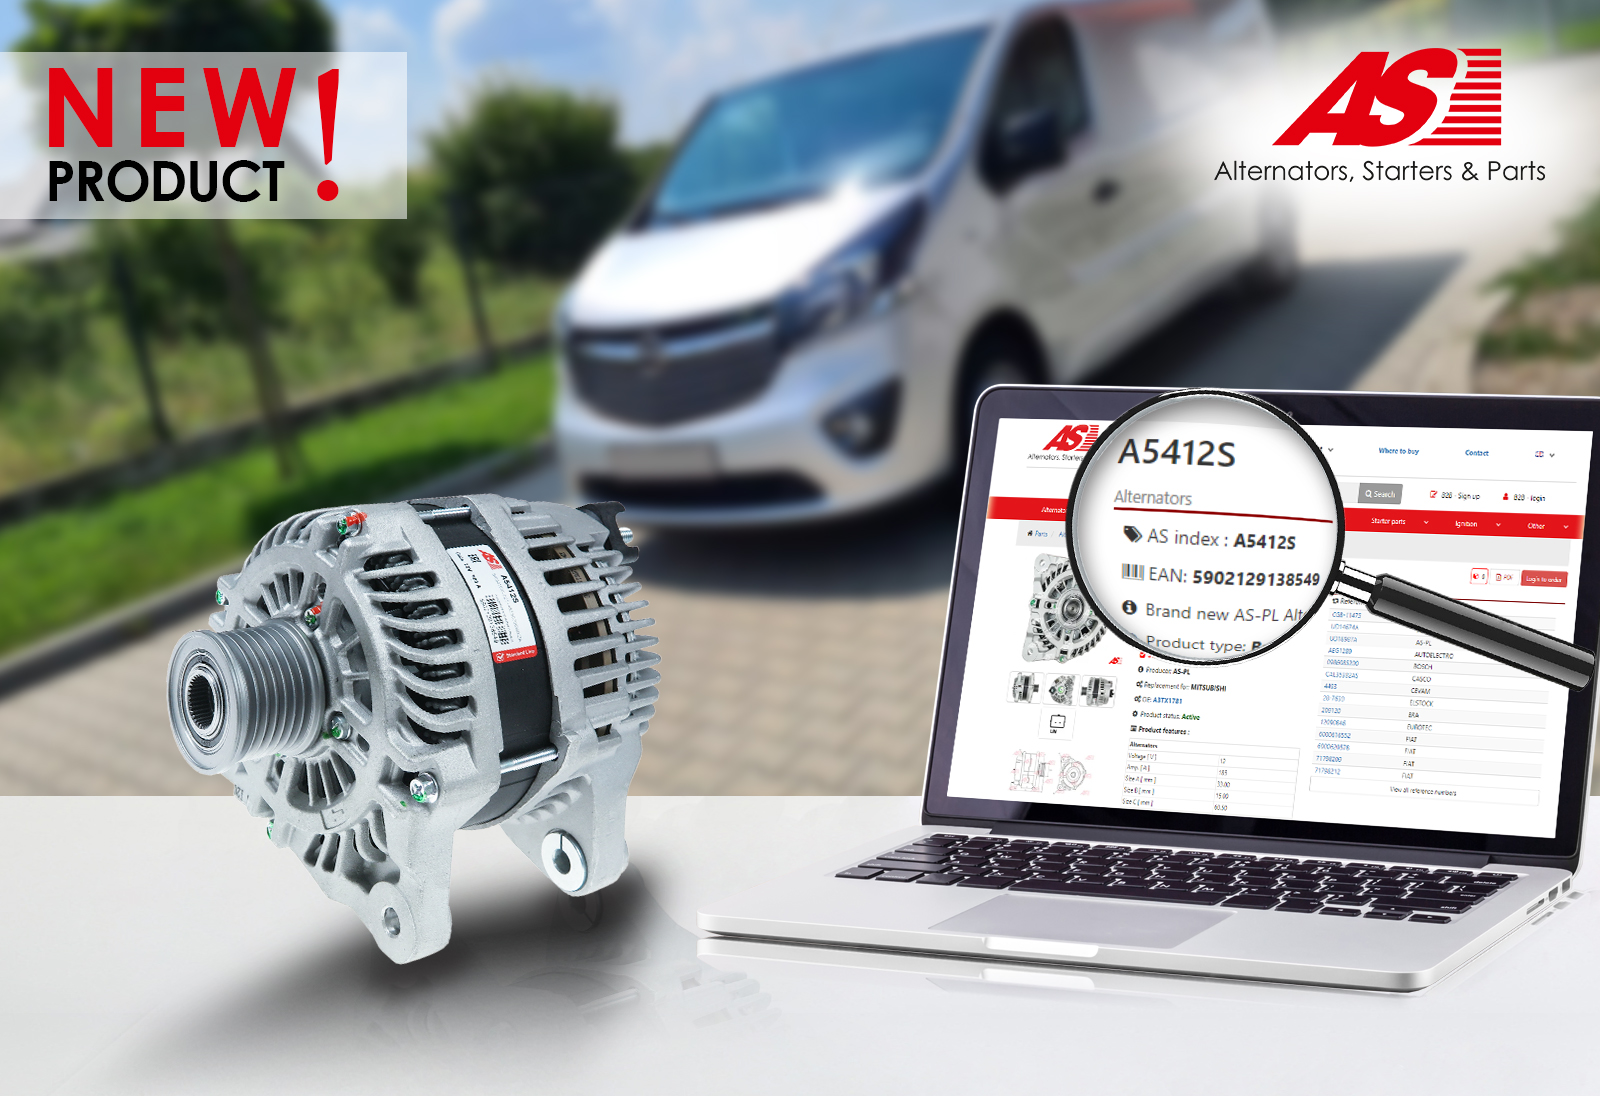 New Renault, Nissan, Opel alternator from AS-PL